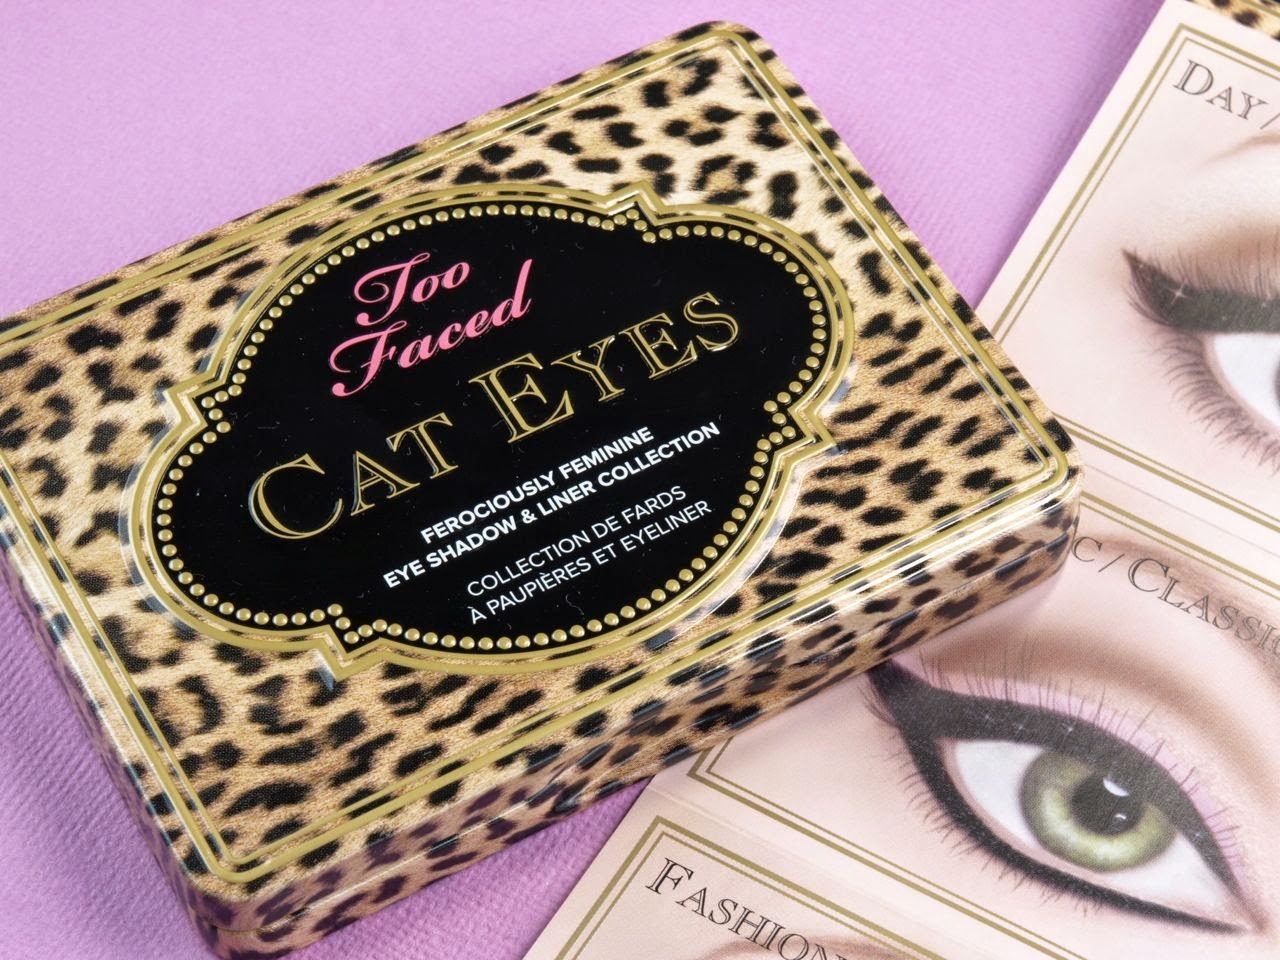 Too Faced Cat Eyes Eye Shadow & Liner Palette: Review and Swatches